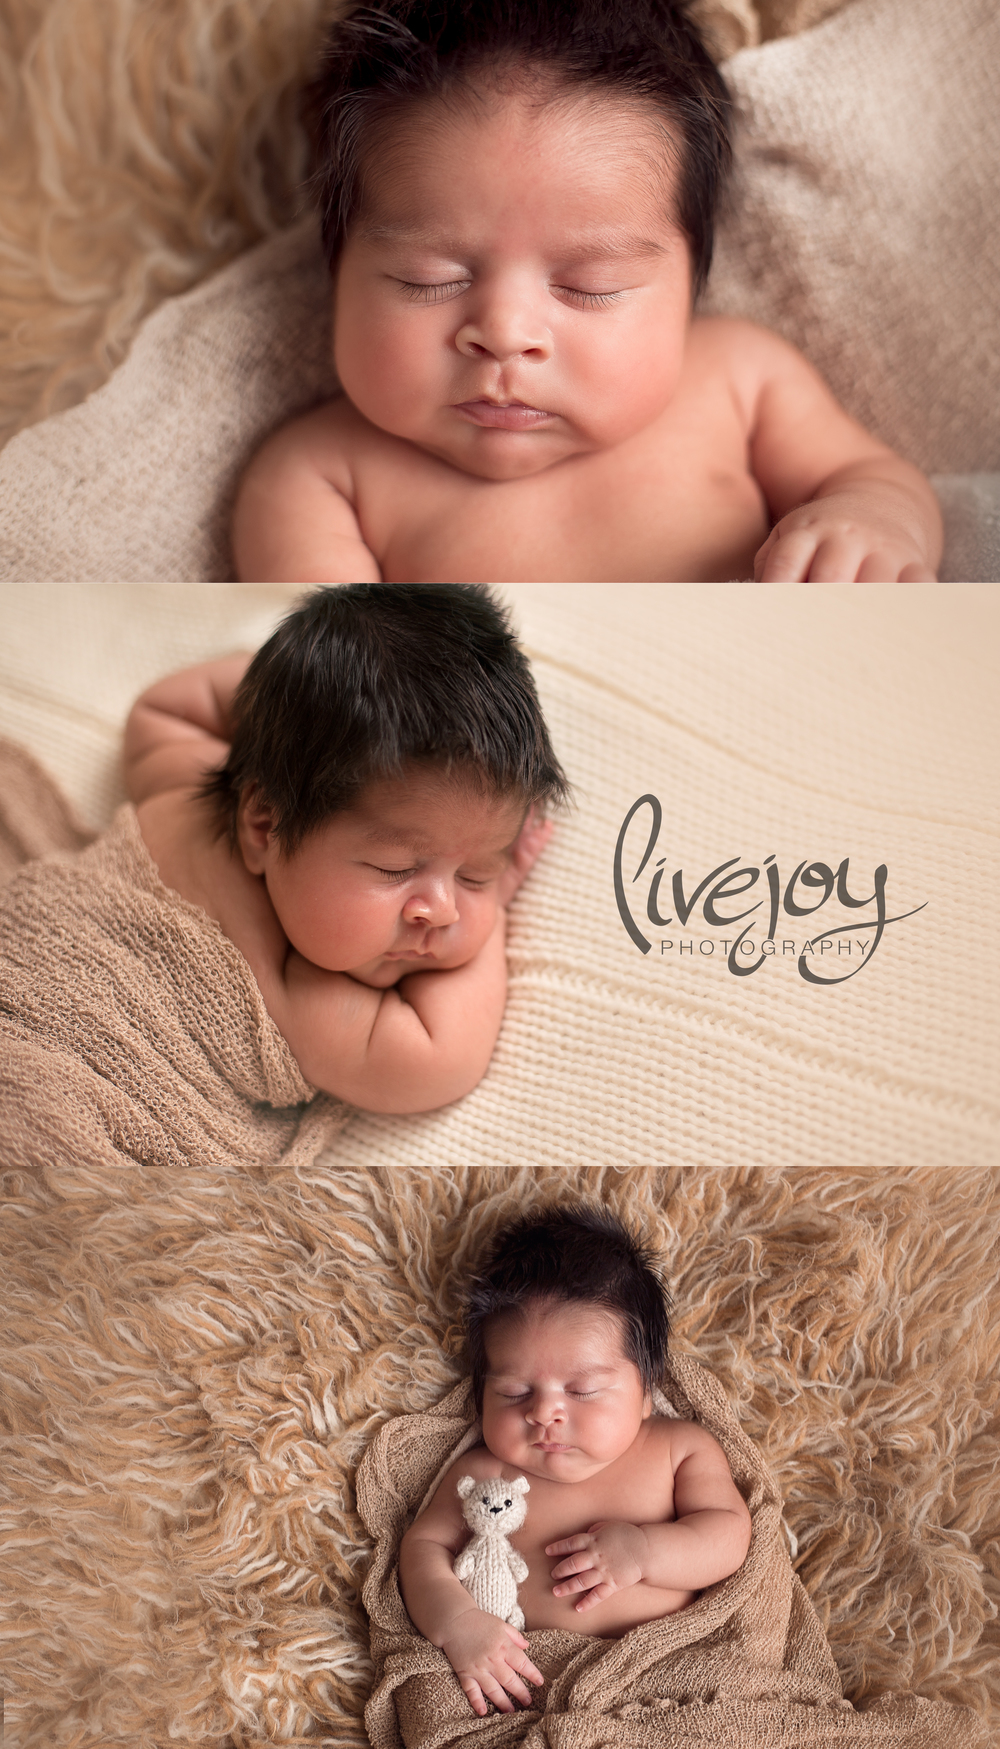 1 Month | Newborn Photograph | Oregon | LiveJoy Photography